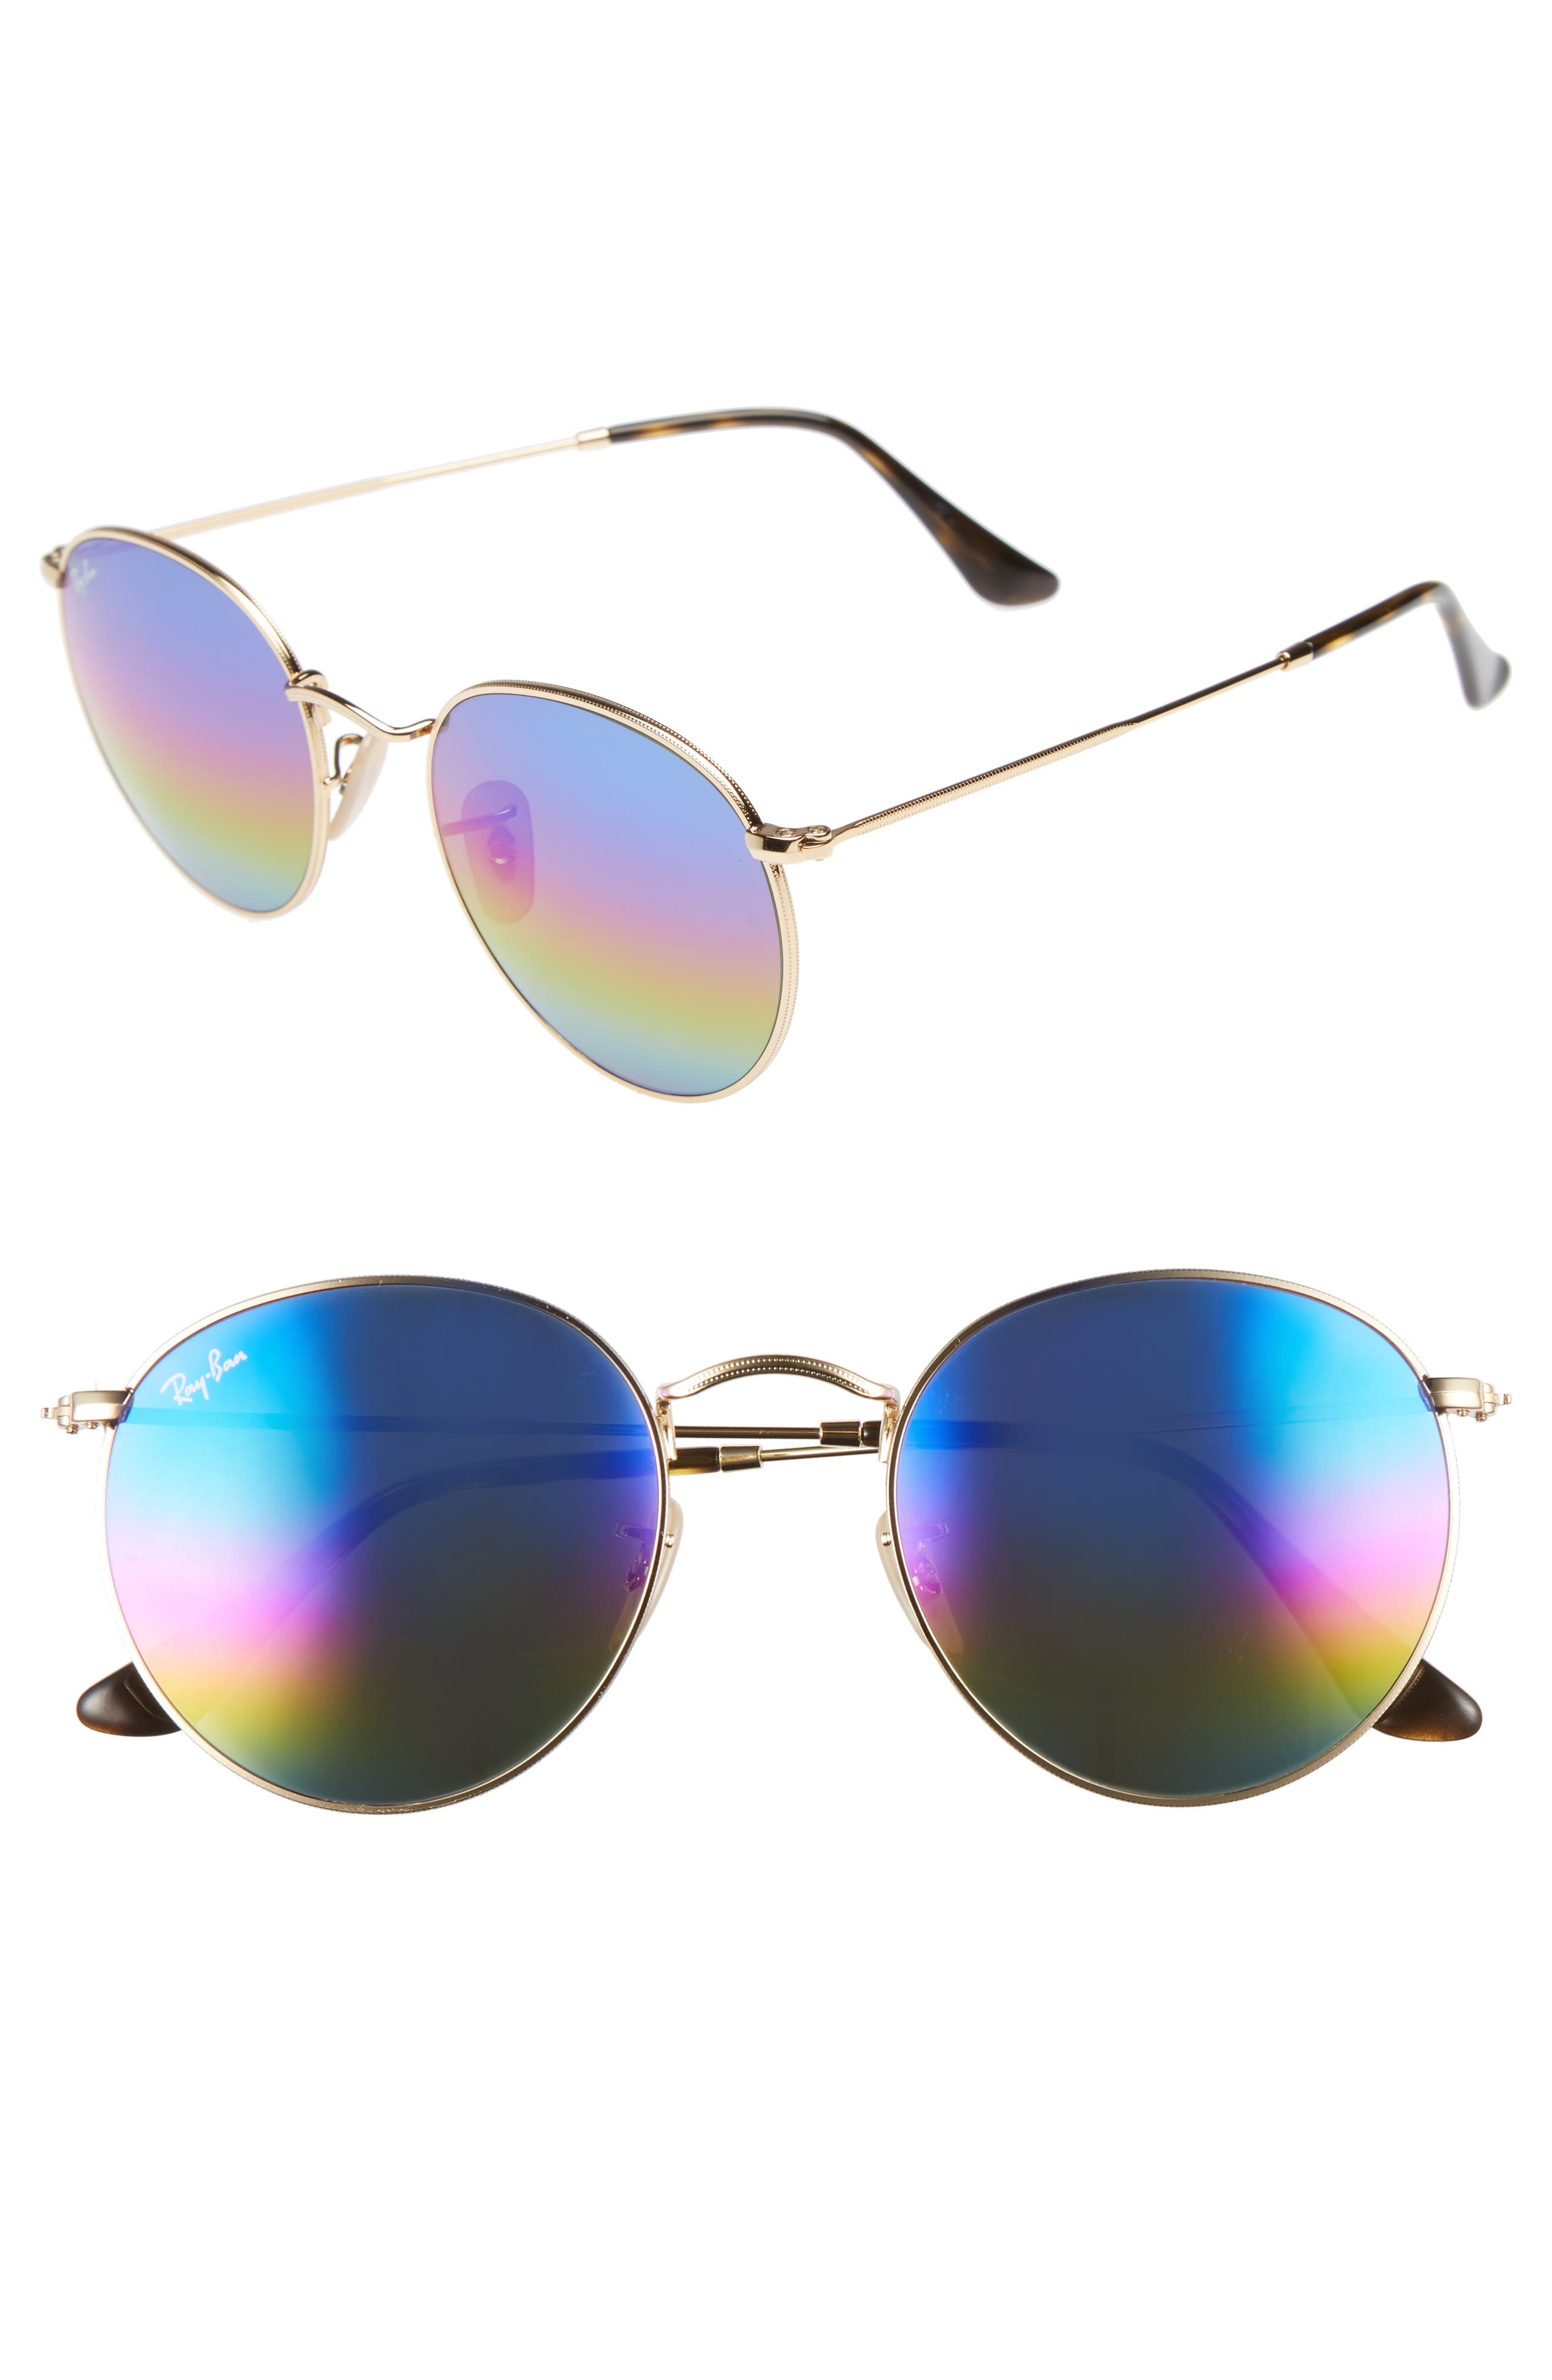 Alternate Image 1 Selected - Ray-Ban 53mm Round Sunglasses (Nordstrom Exclusive)